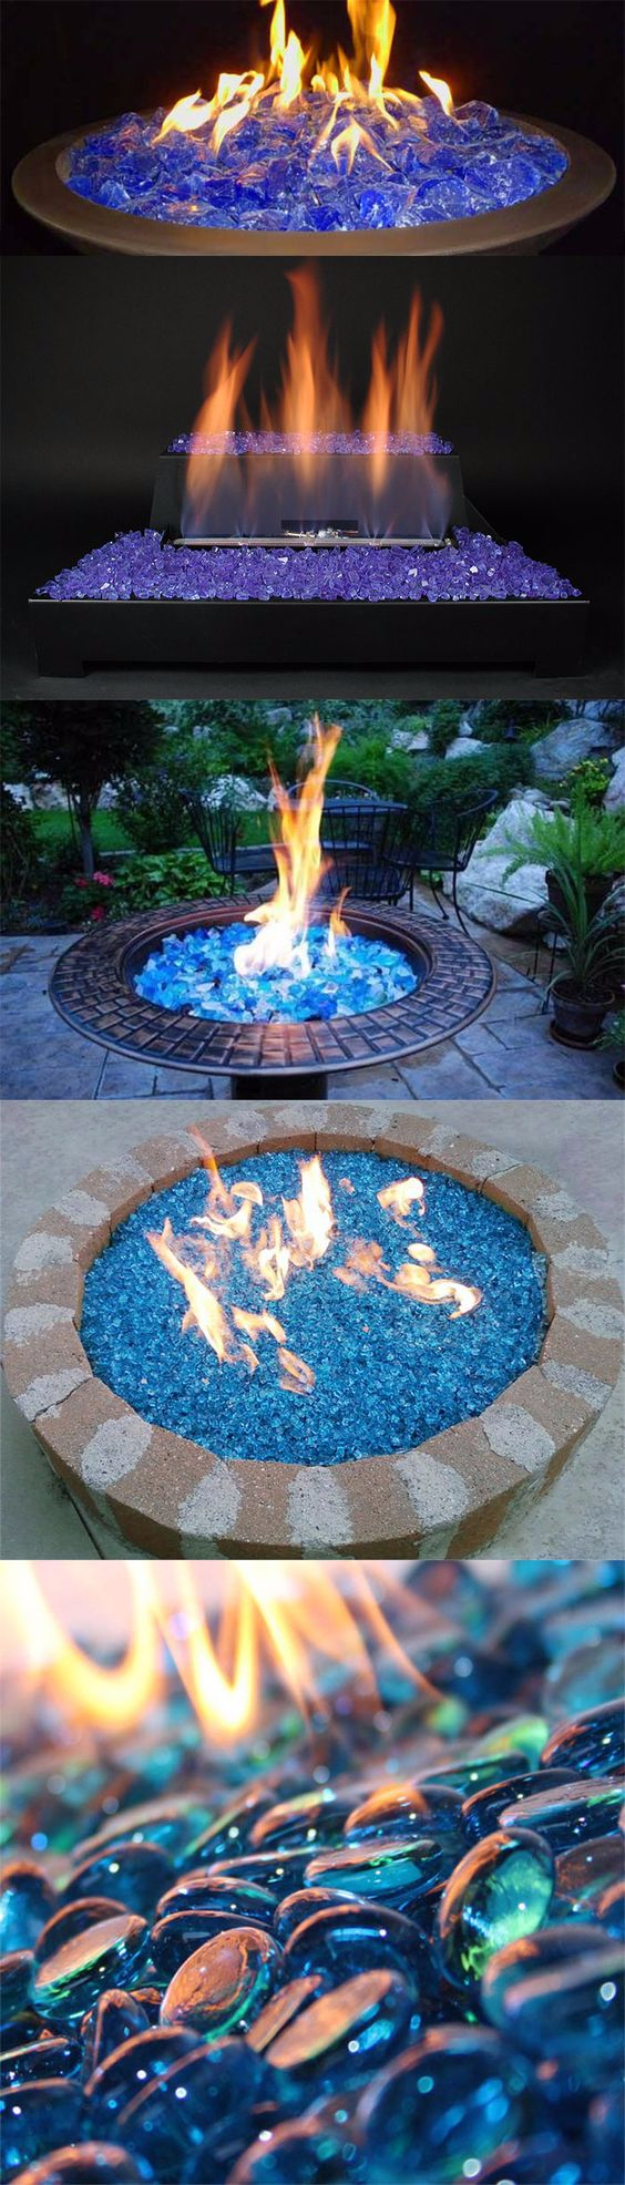 31 DIY Outdoor Fireplace and Firepit Ideas - DIY Joy on Diy Outdoor Fire id=24859